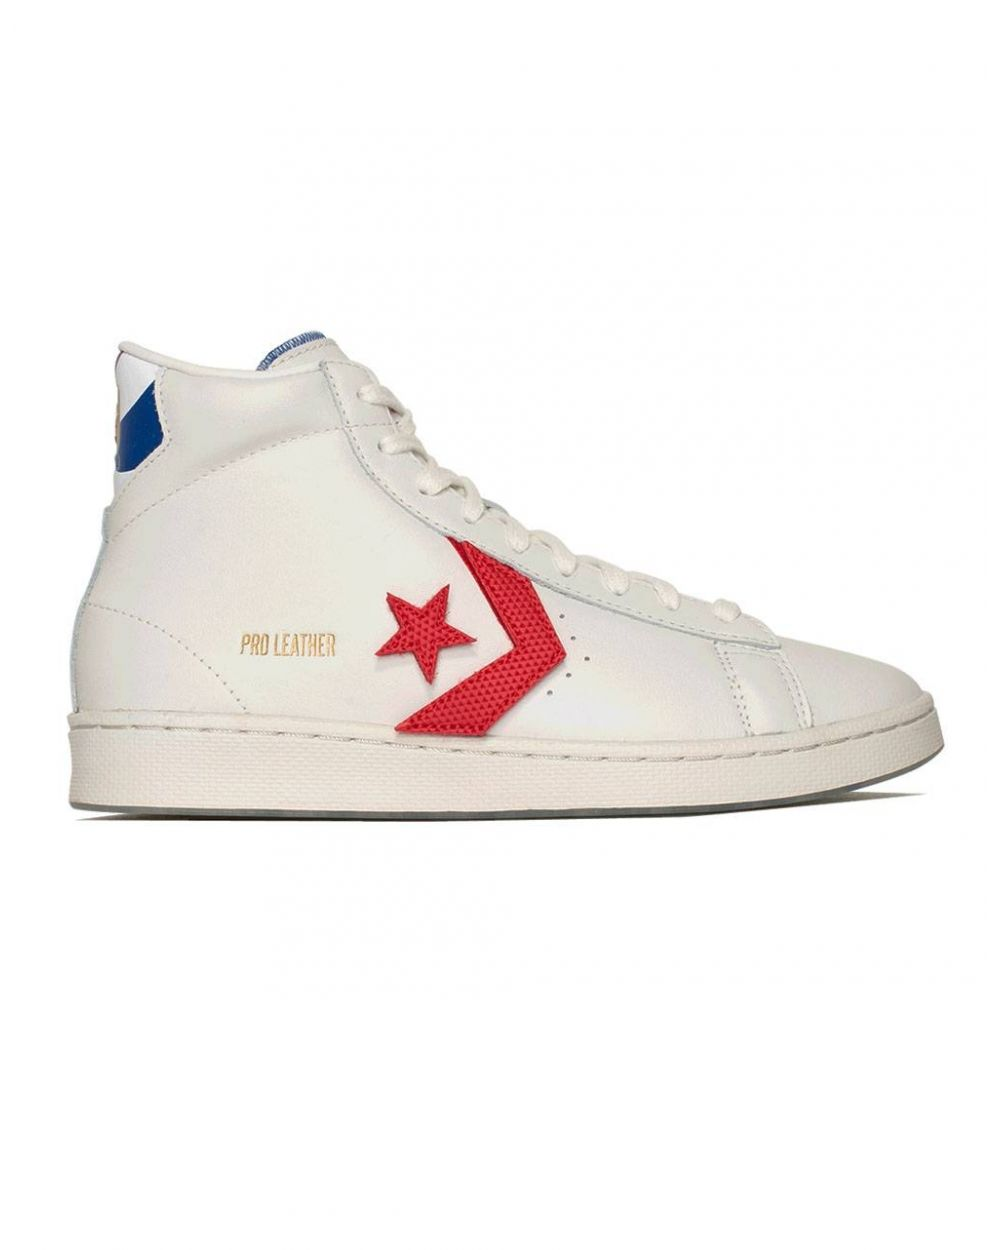 Converse Pro Leather Birth Of Light - Vintage white Converse Sneakers 98,36€